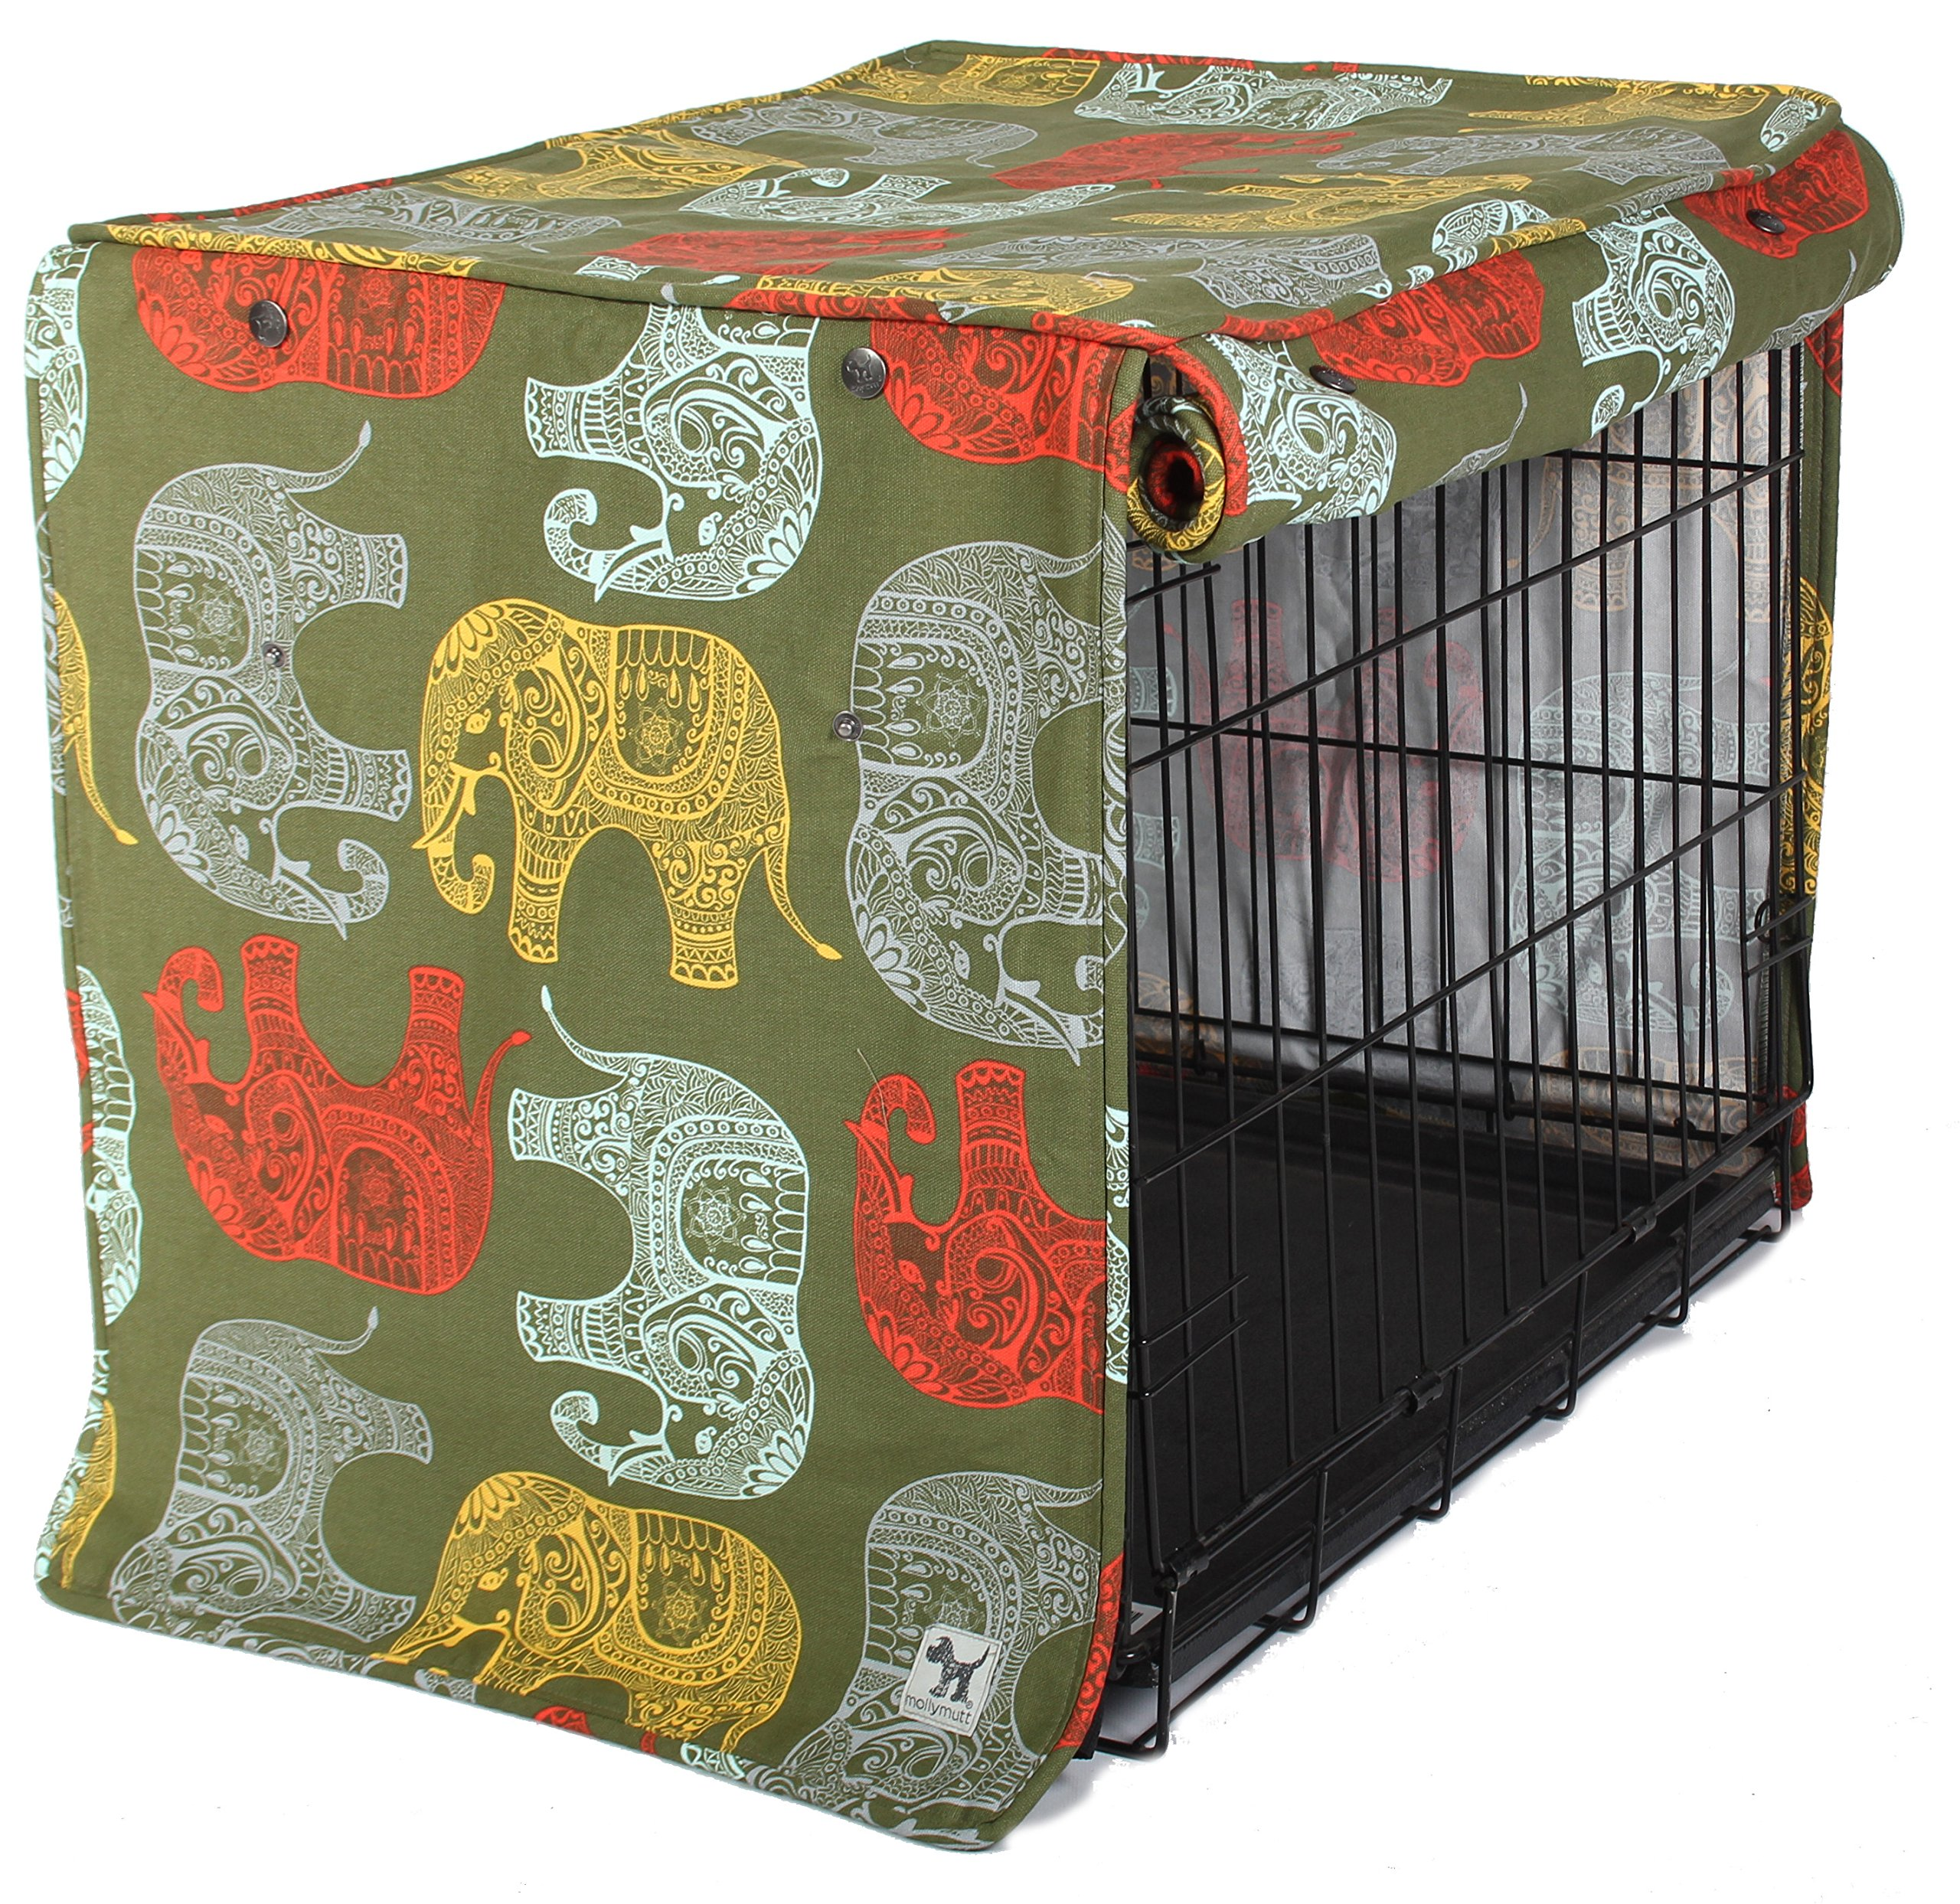 Molly Mutt Elephant Parade Crate Cover, Small